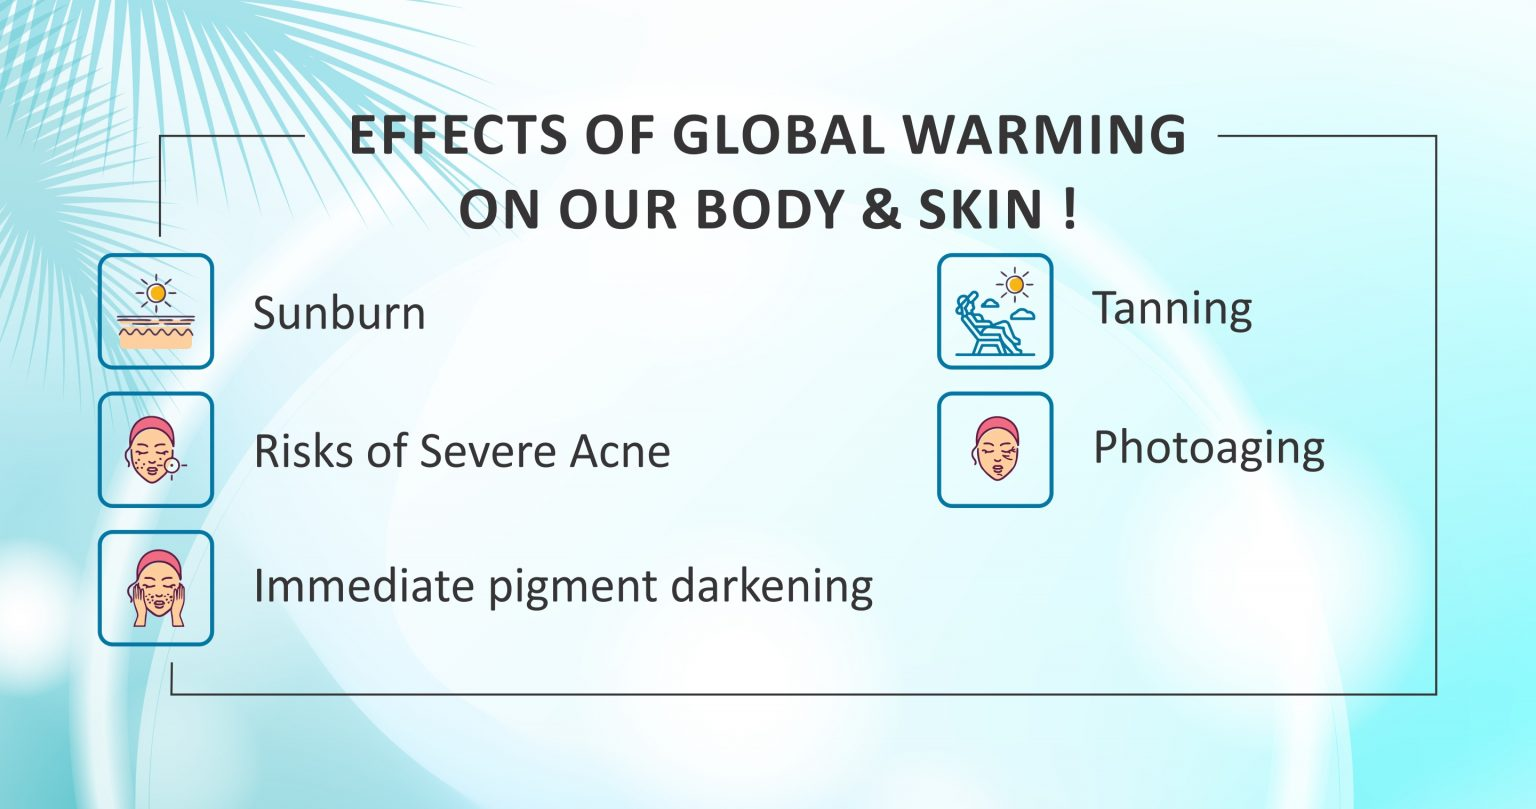 Effects Of Global Warming On Our Body & Skin!